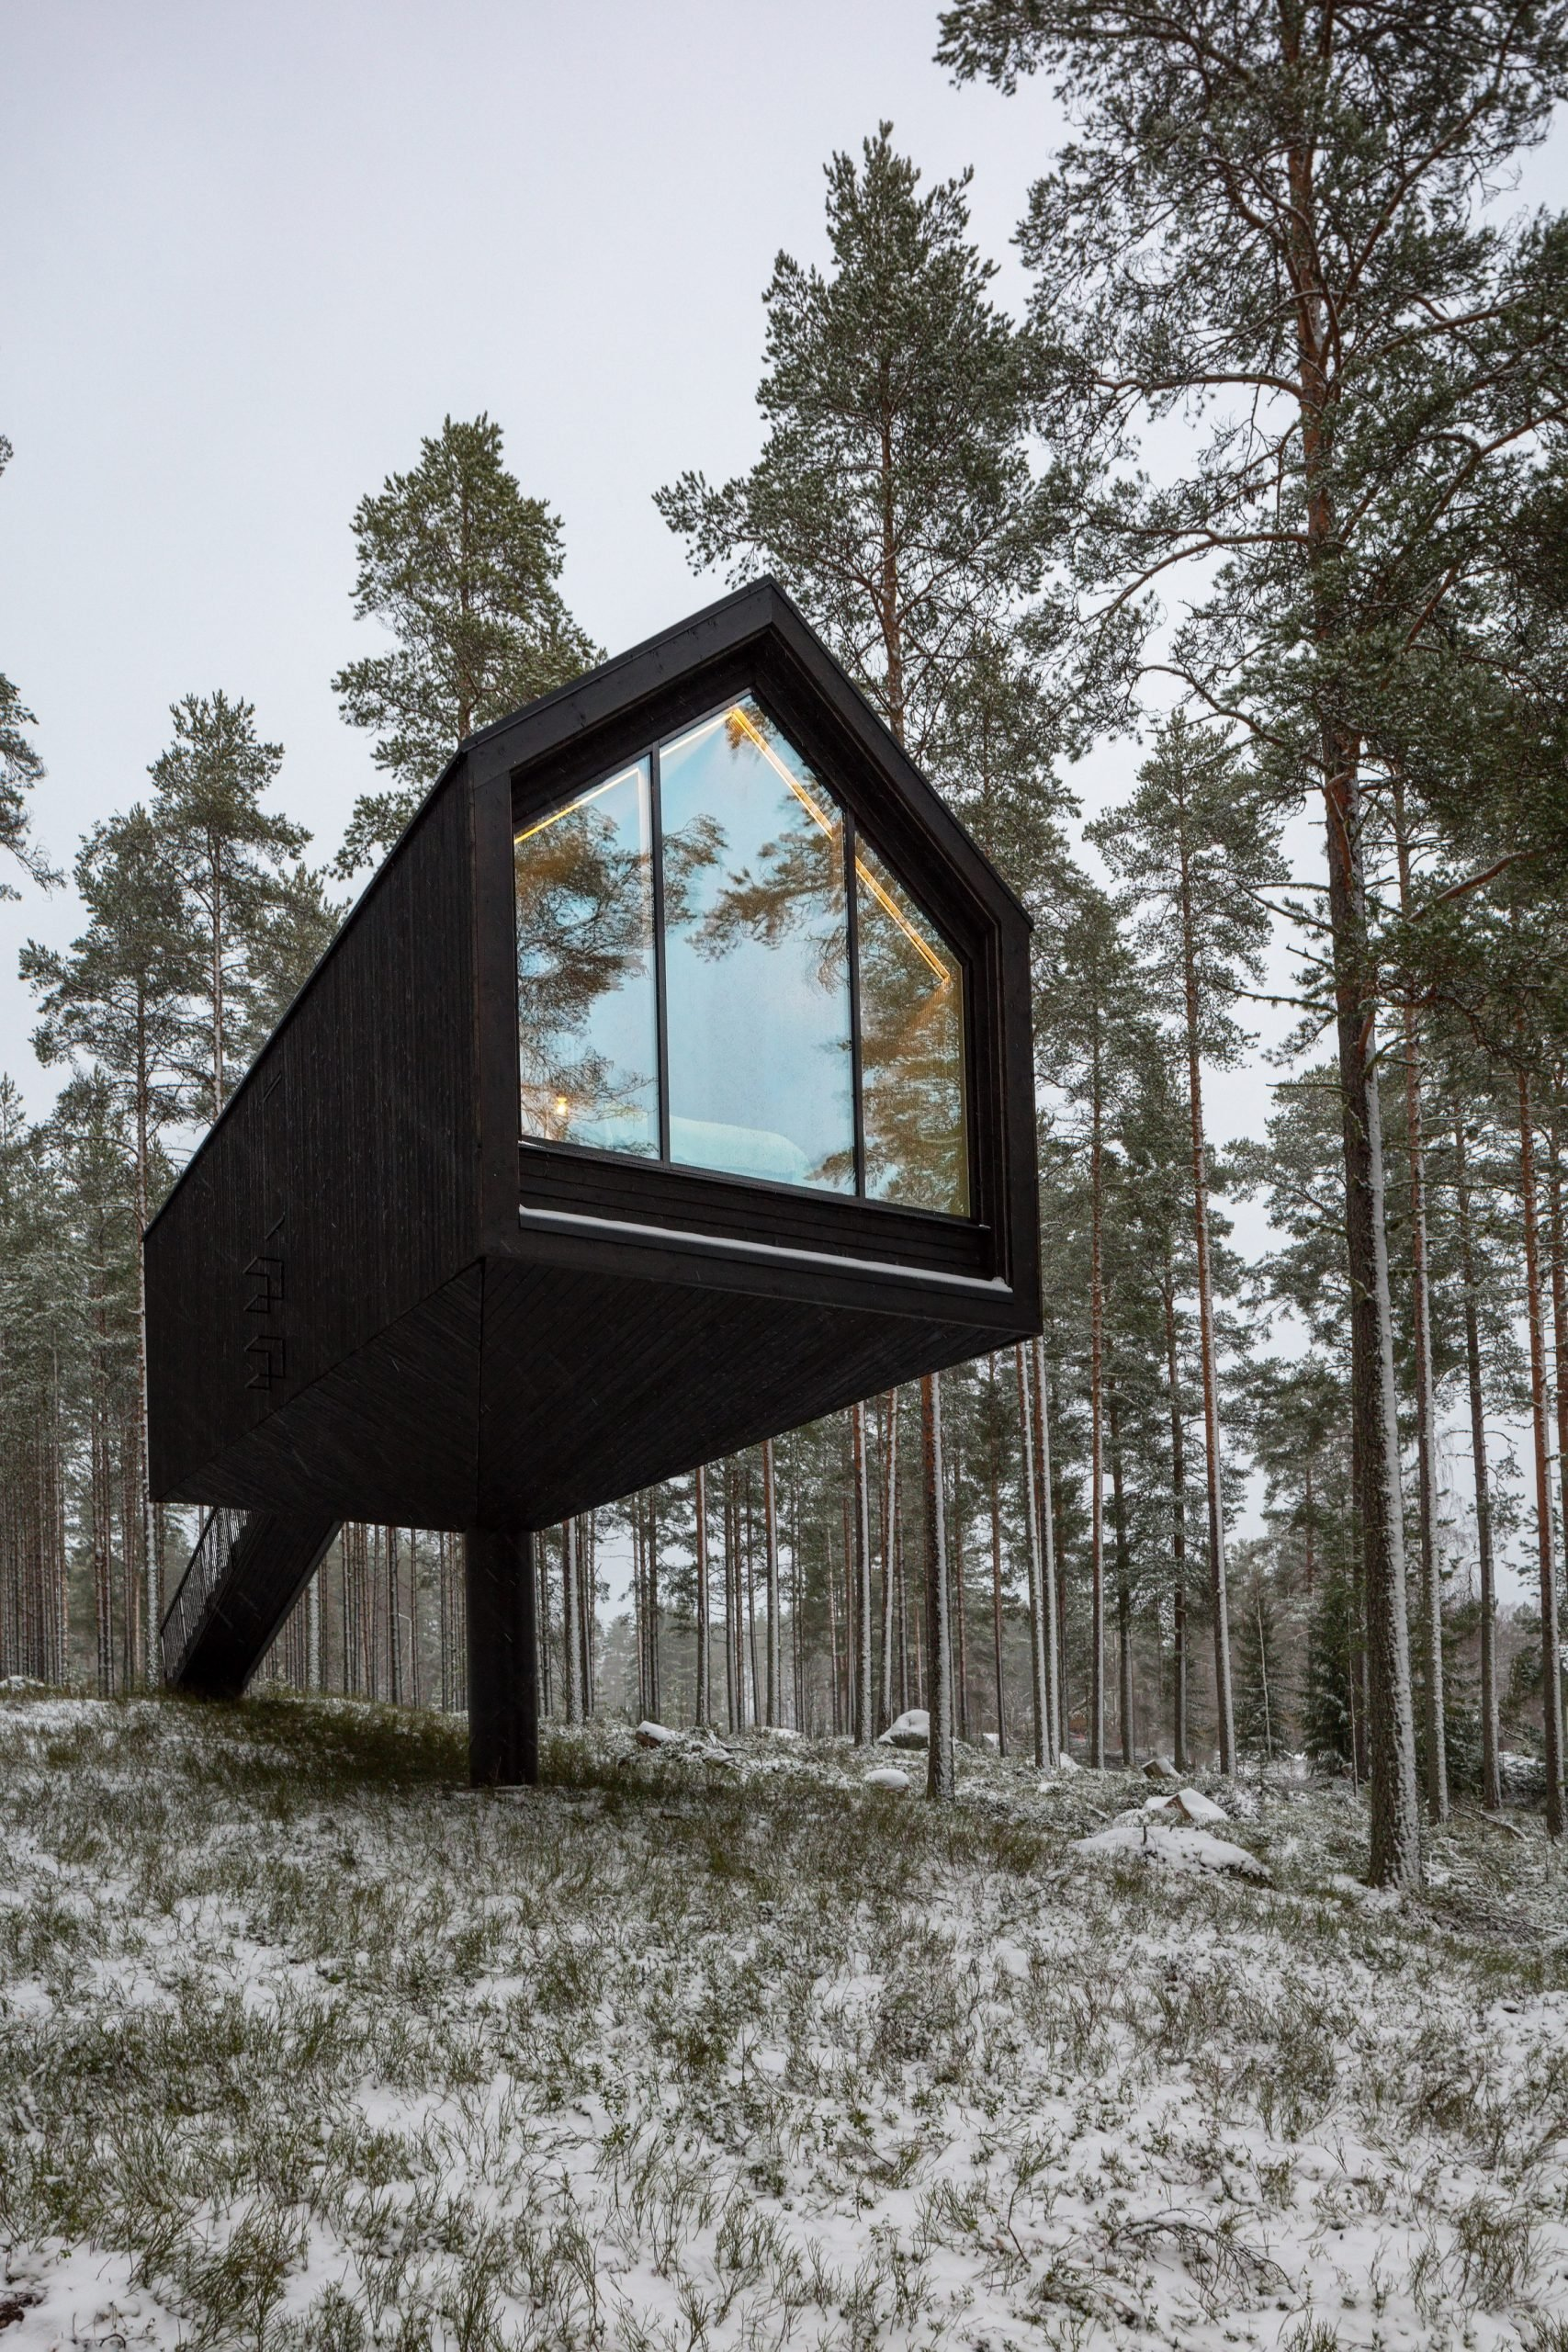 A woodland cabin clad in black-painted wood